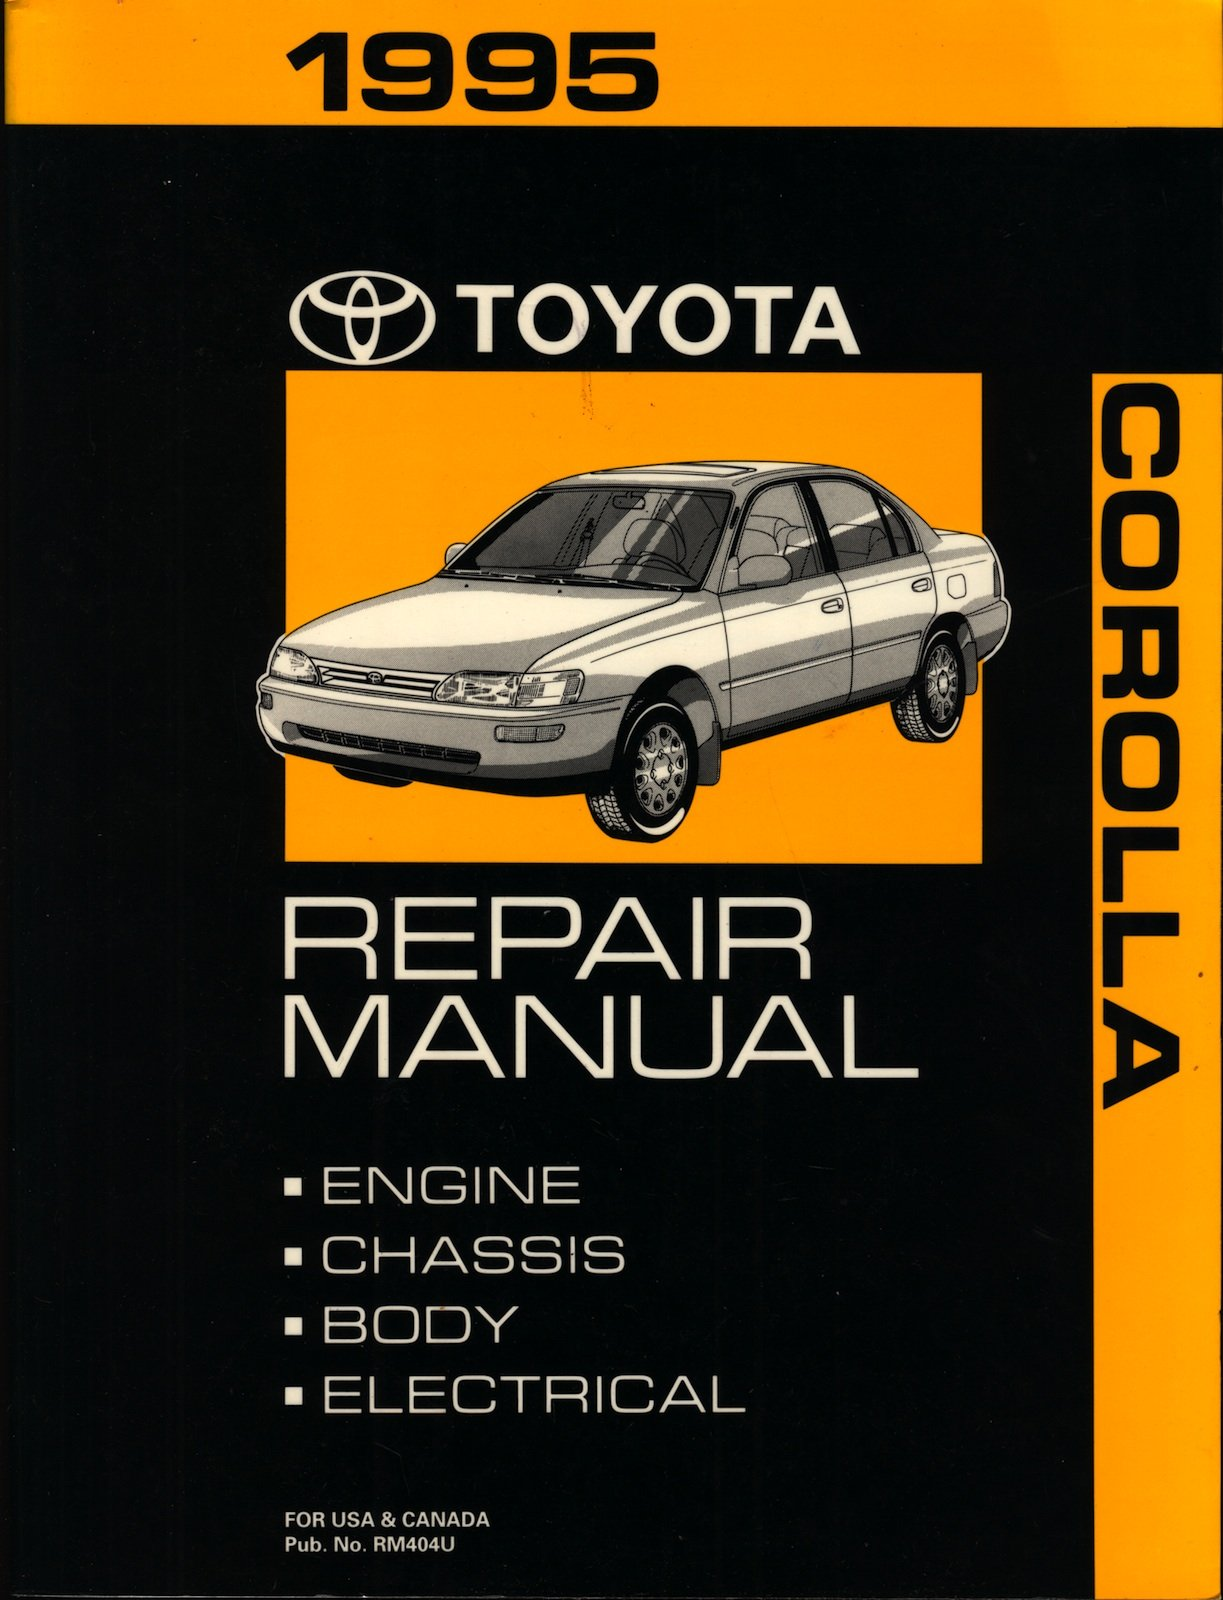 1995 toyota tercel ignition wiring diagram free download wiring 1995 toyota corolla repair manual toyota amazon com books 1995 toyota tercel ignition wiring diagram 26 1998 toyota camry wiring schematic ignition switch asfbconference2016 Image collections